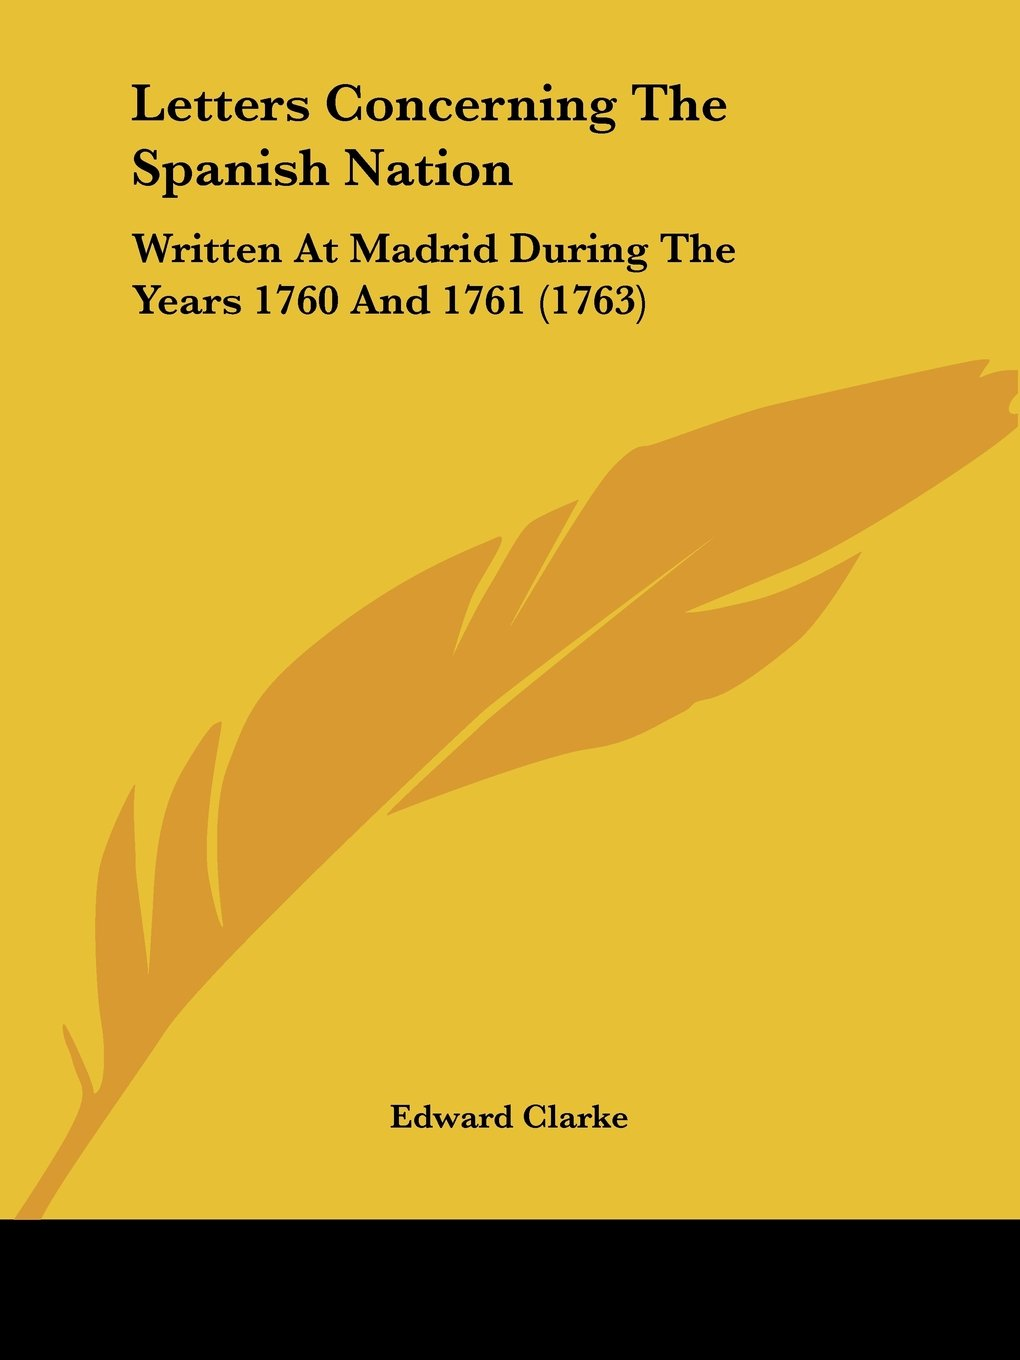 Letters Concerning The Spanish Nation: Written At Madrid During The Years 1760 And 1761 (1763) pdf